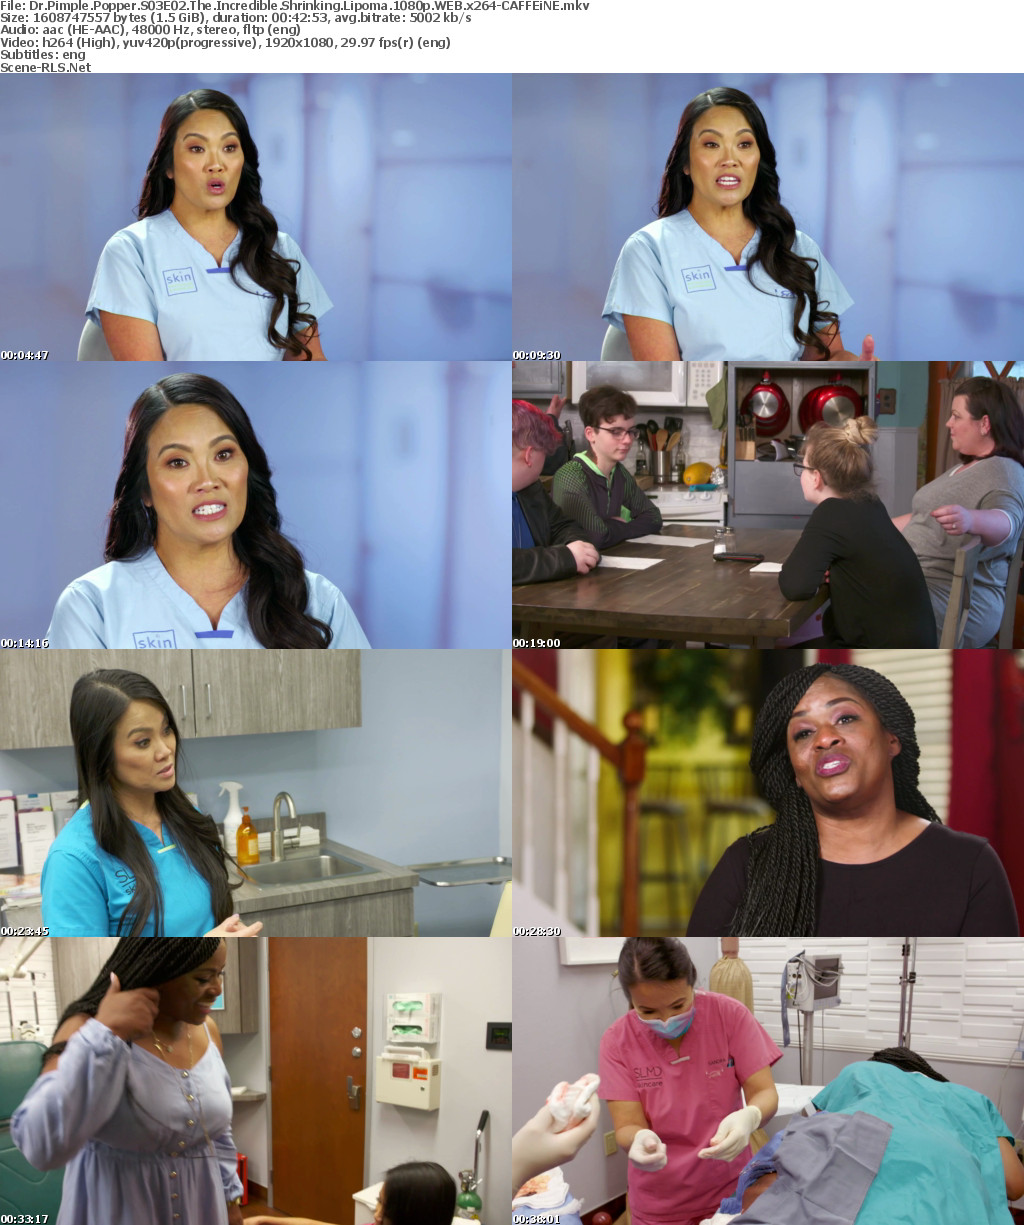 Dr Pimple Popper S03E02 The Incredible Shrinking Lipoma 1080p WEB